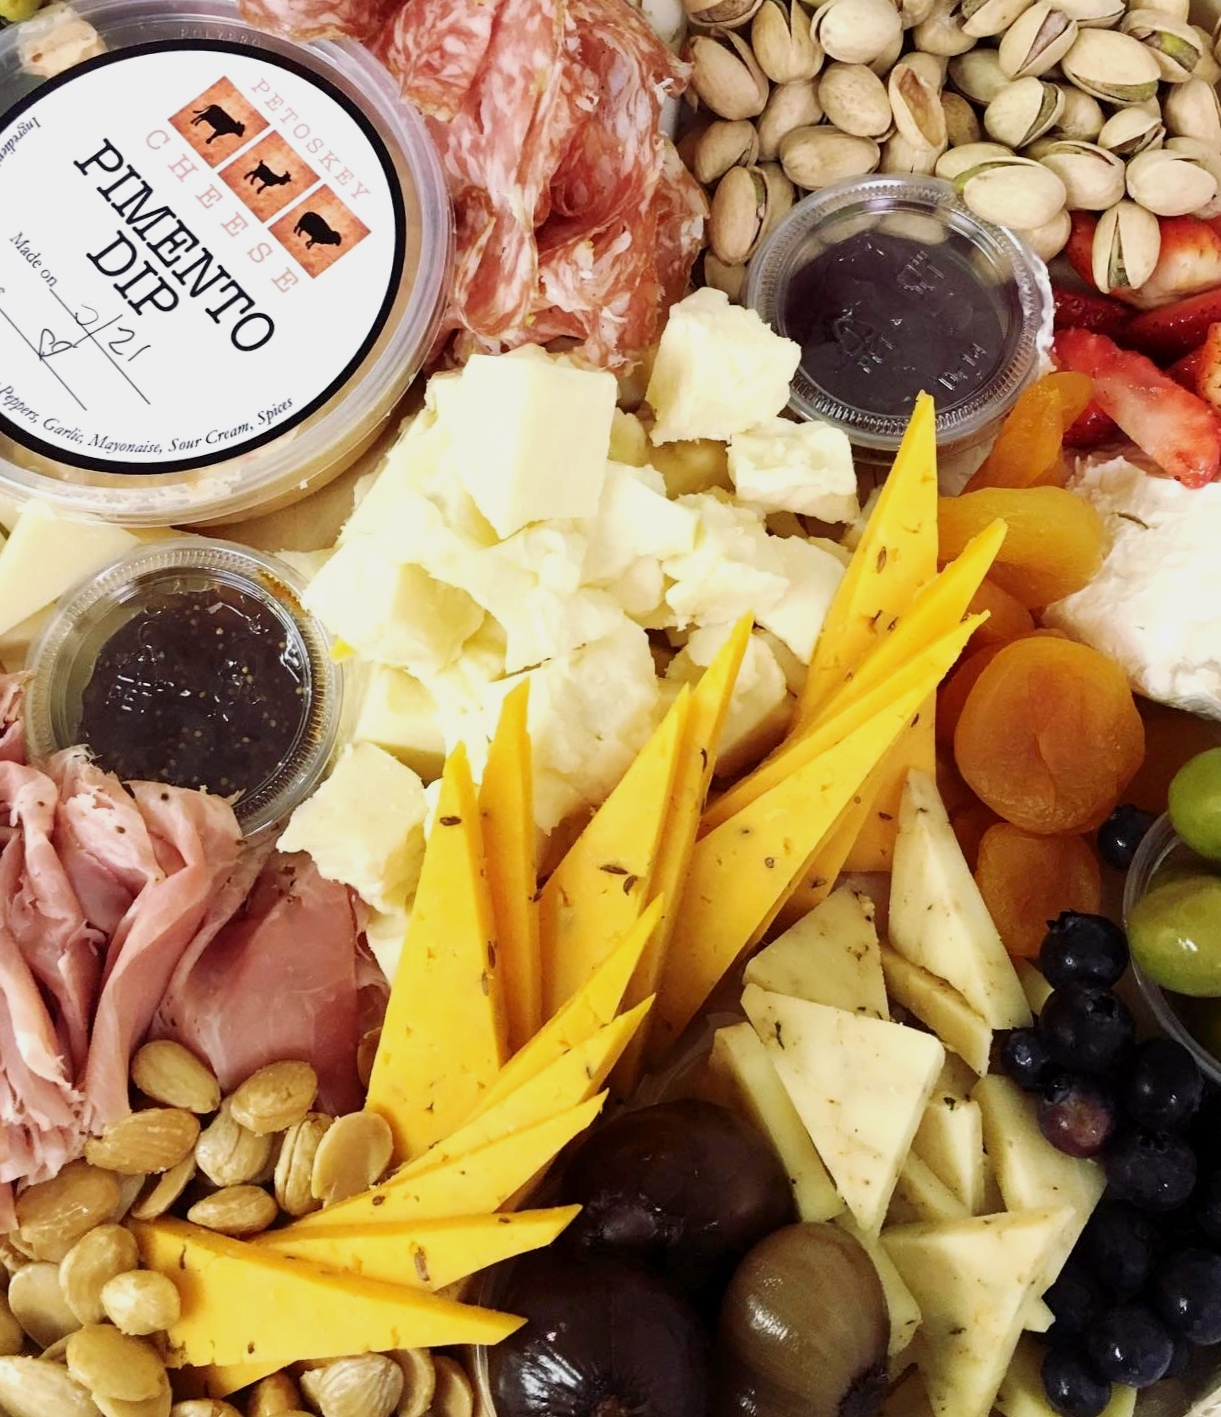 Be the hero - Pictured is our $75 medium tray. Bring to any party and become an instant hero. Easily feeds 8-12